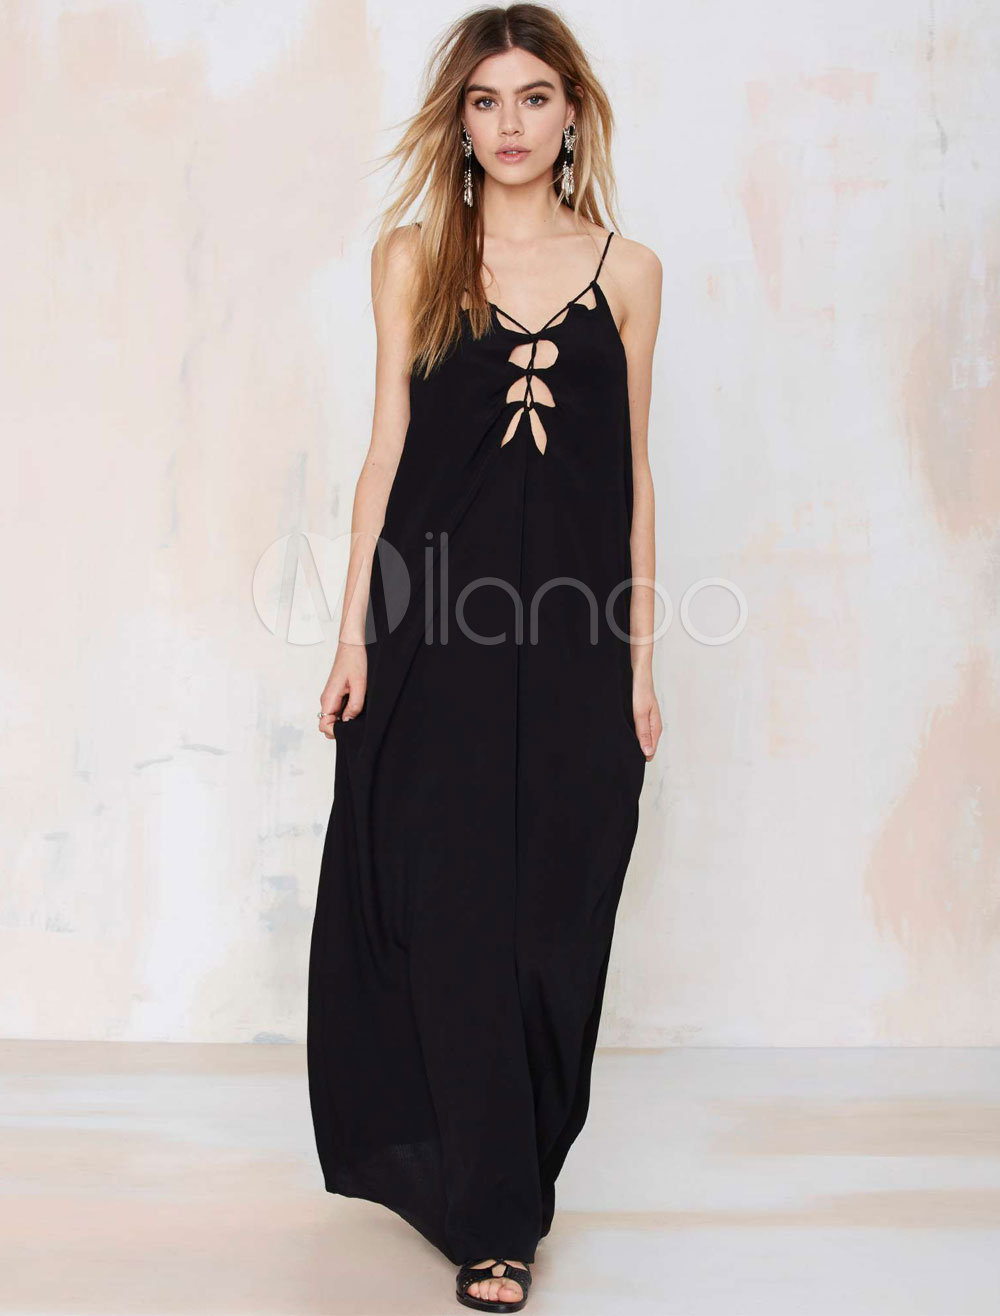 Buy Black Maxi Dress Strappy Sleeveless Cut Out Backless Cotton Long Dress for $35.99 in Milanoo store